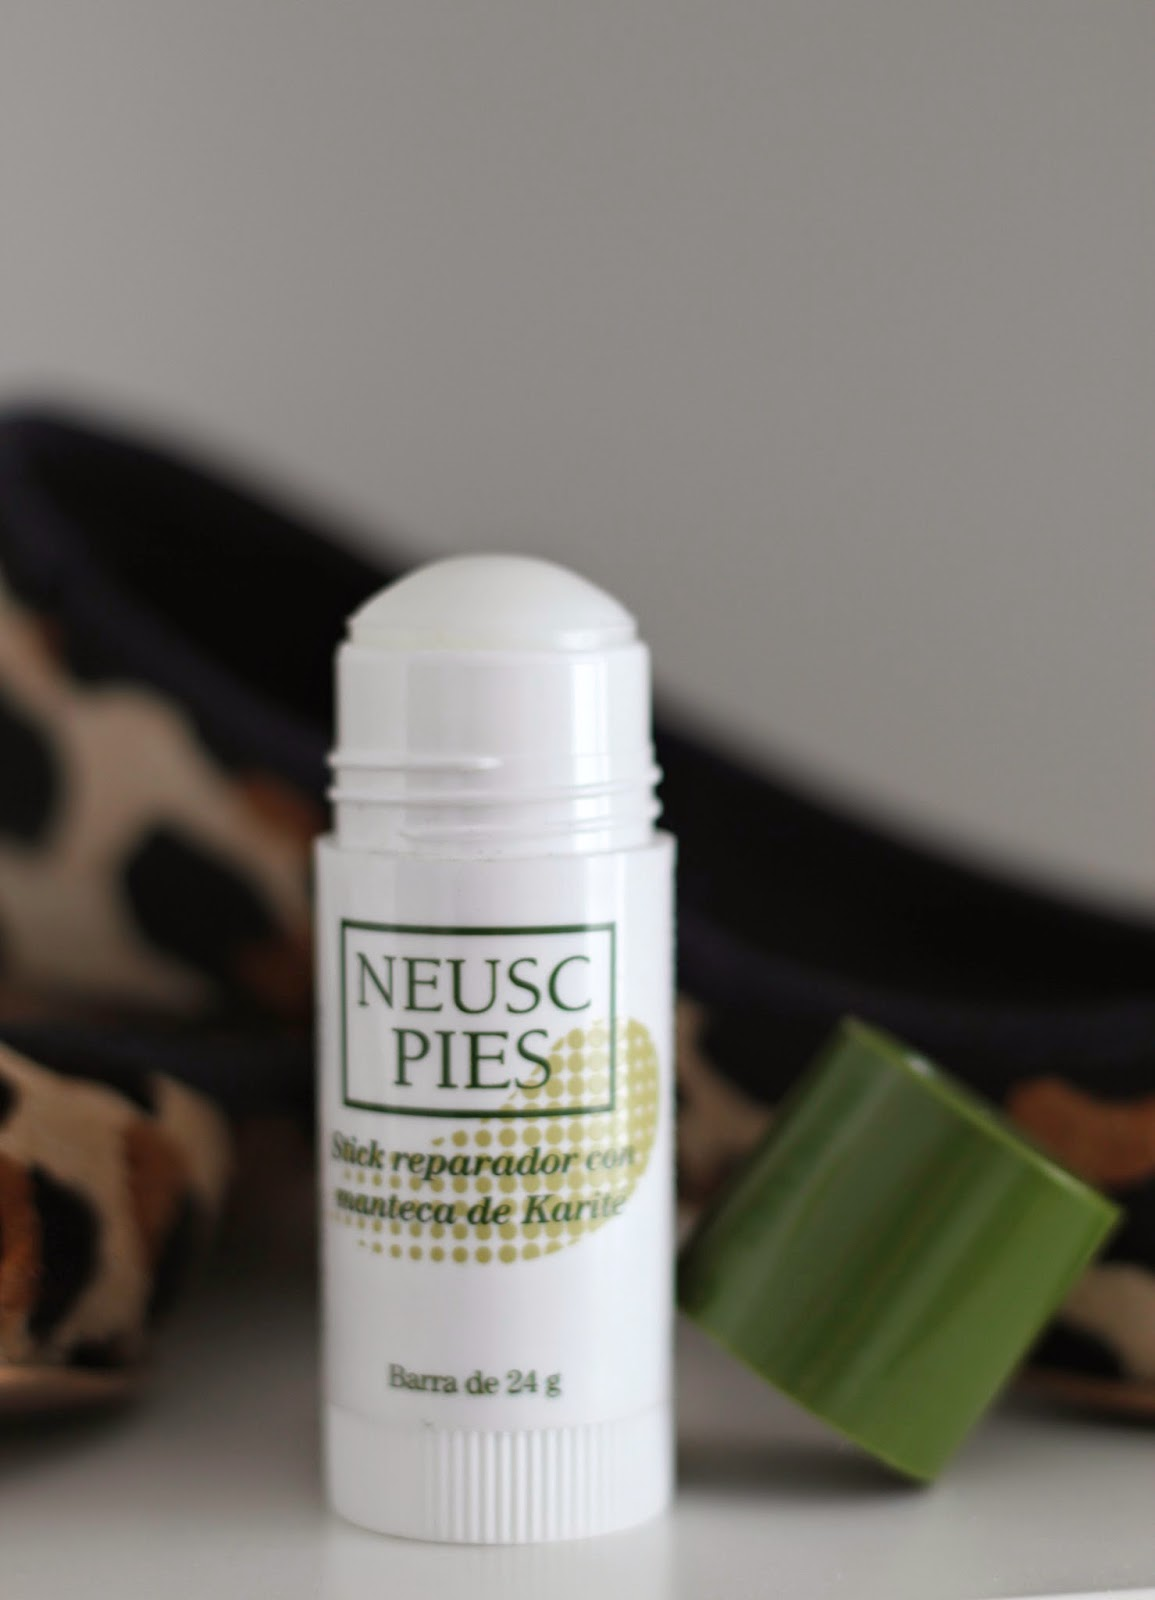 photo-neusc-stick-reparador-pies